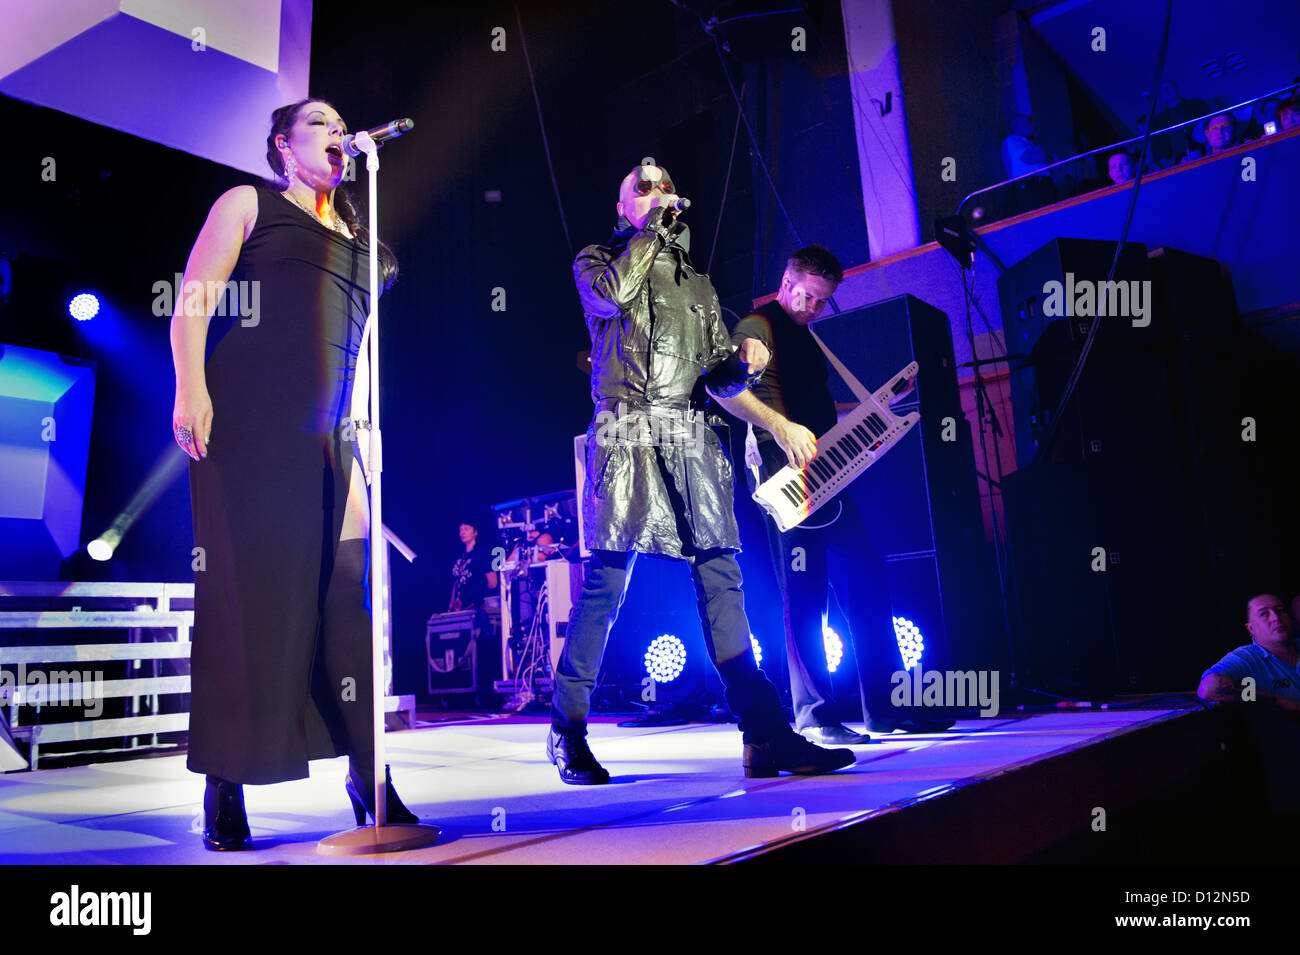 Joanne Catherall and Phil Oakey with their band, The Human League in concert at Wolverhampton Civic Hall on 2 December - Stock Image